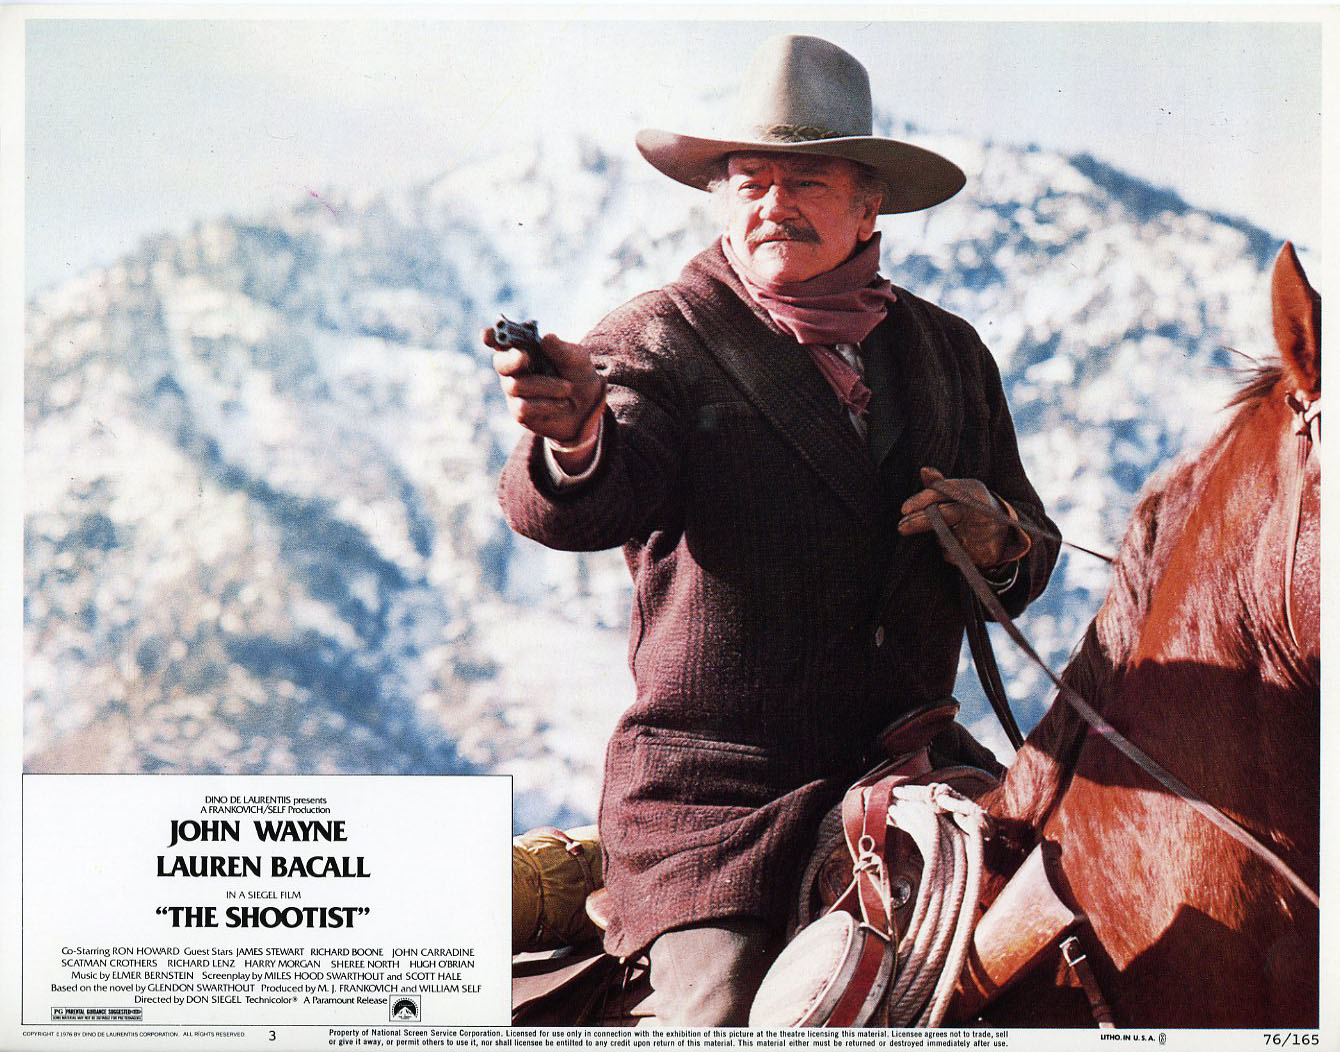 HELLO FROM FRED & ETHEL'S HOUSE: The Shootist (1976